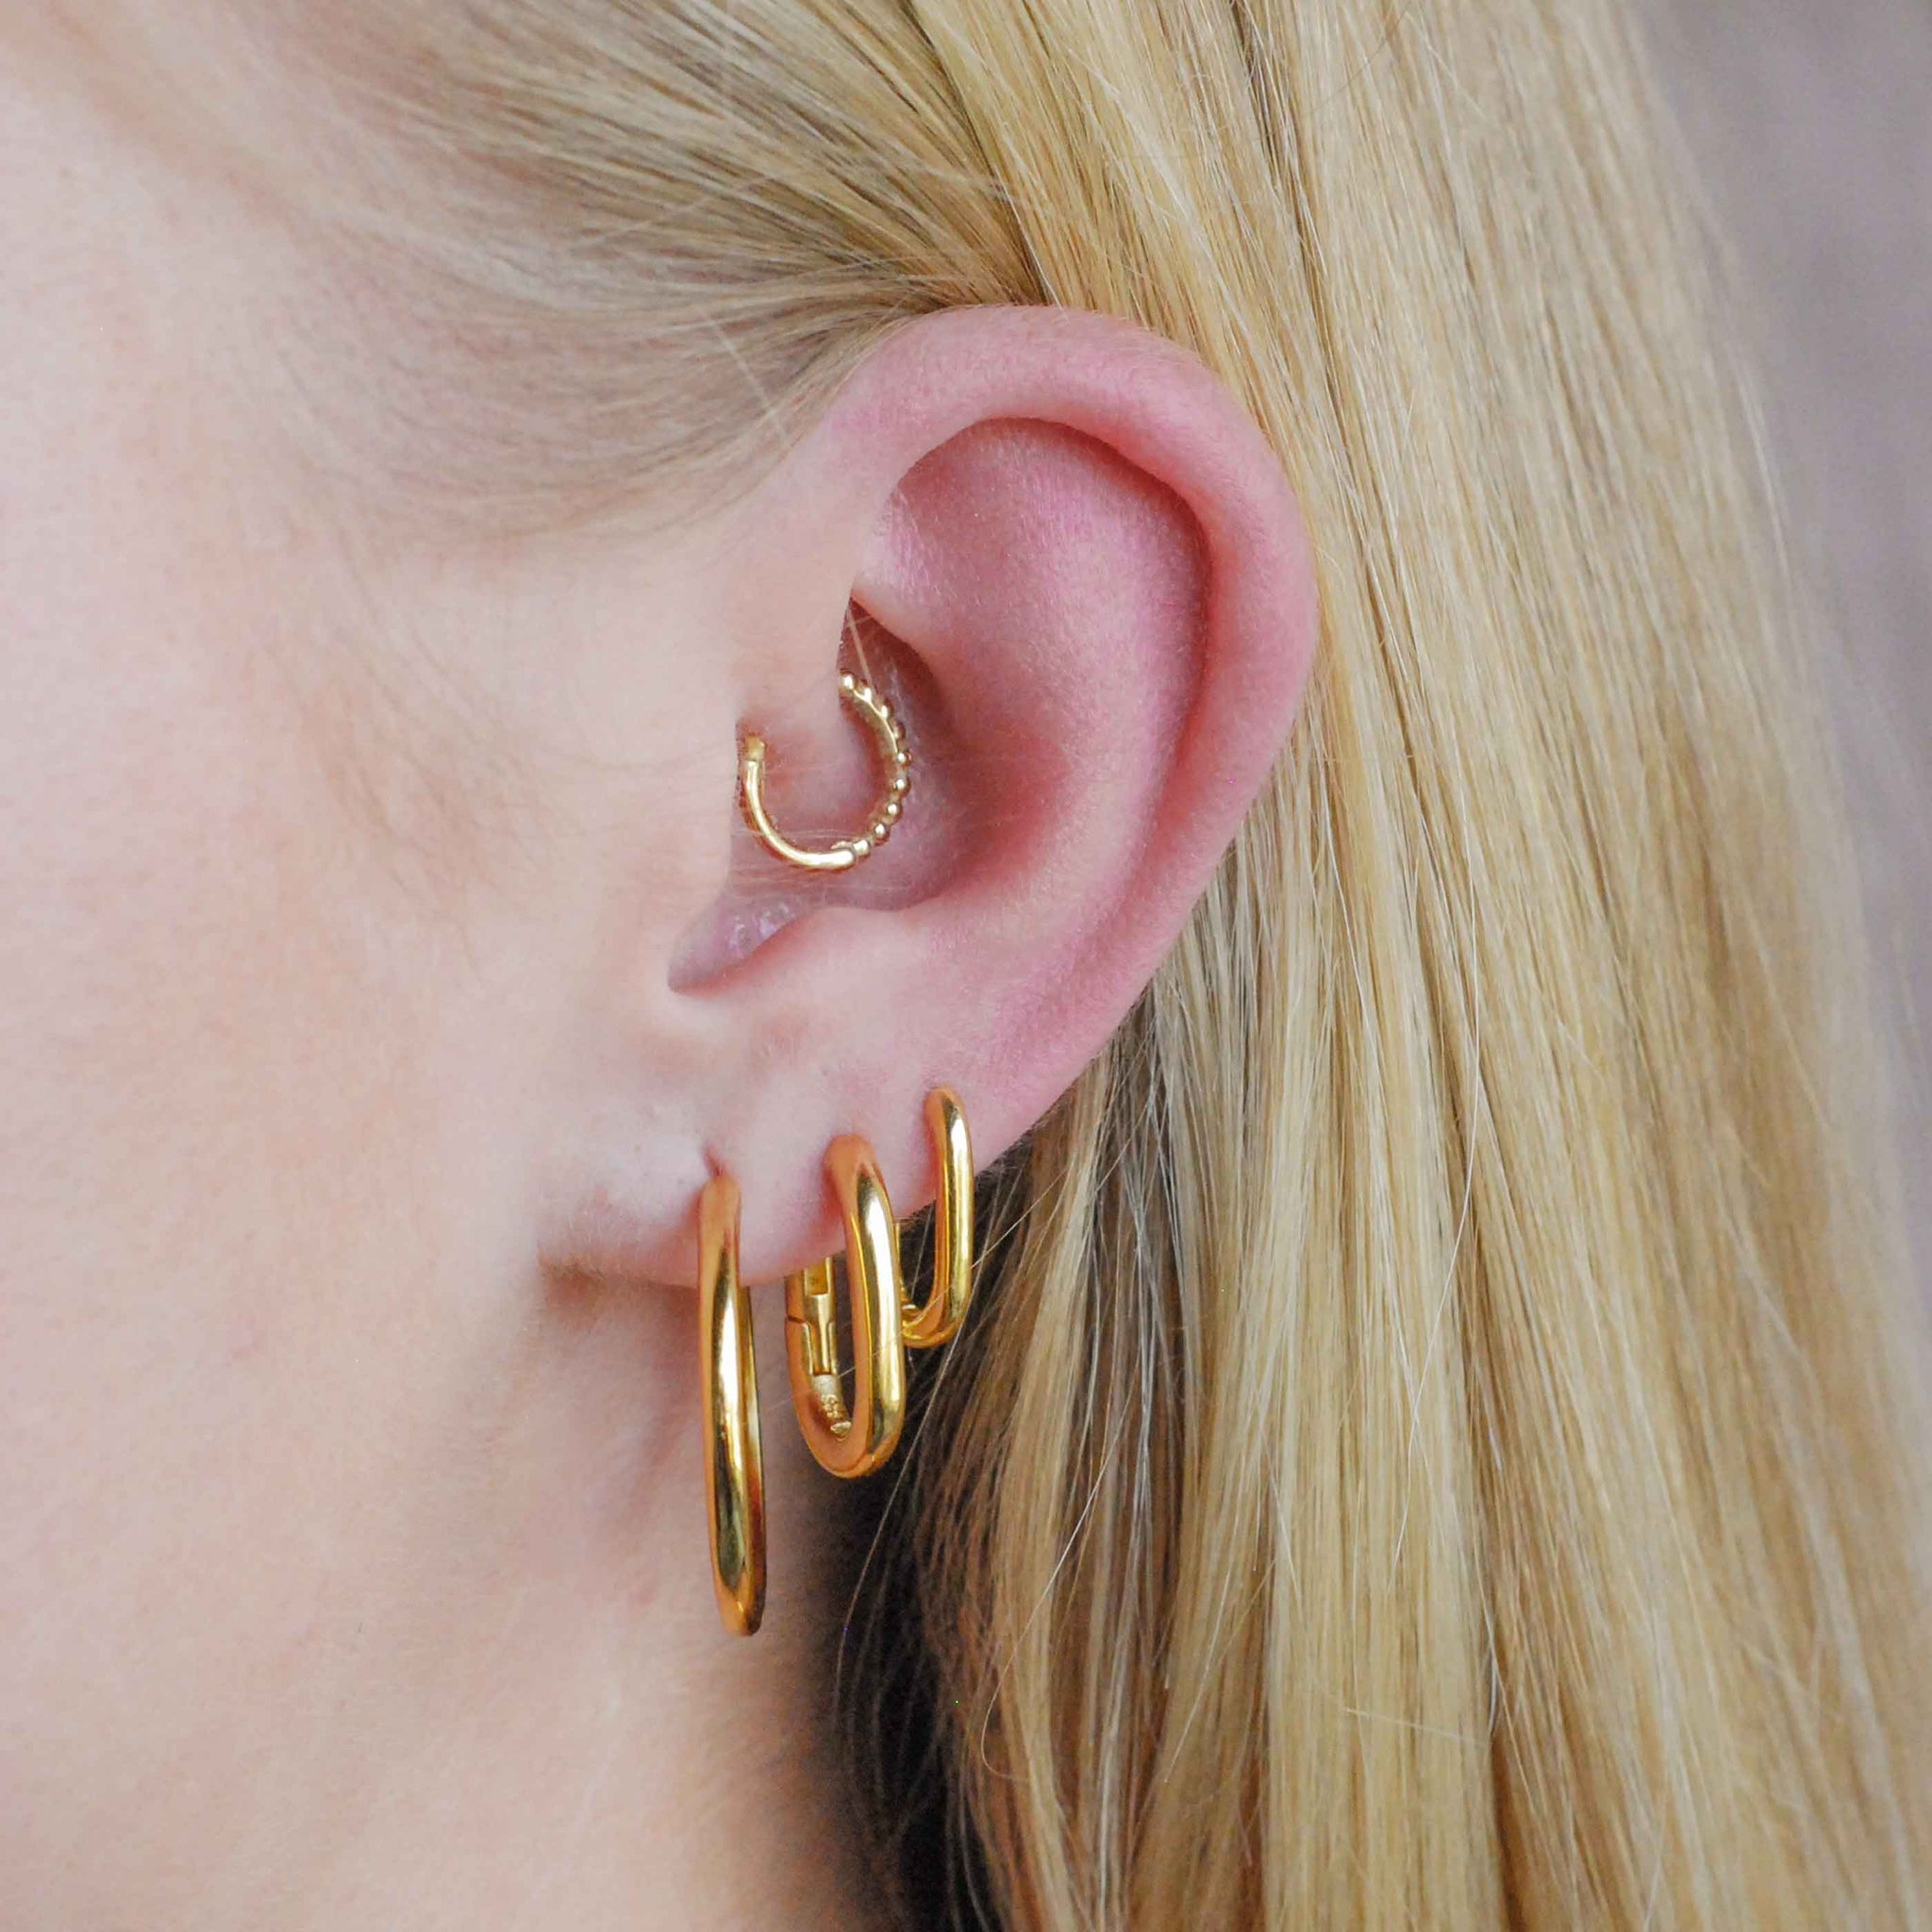 Rectangular Hoops in Gold worn in second lobe piercing